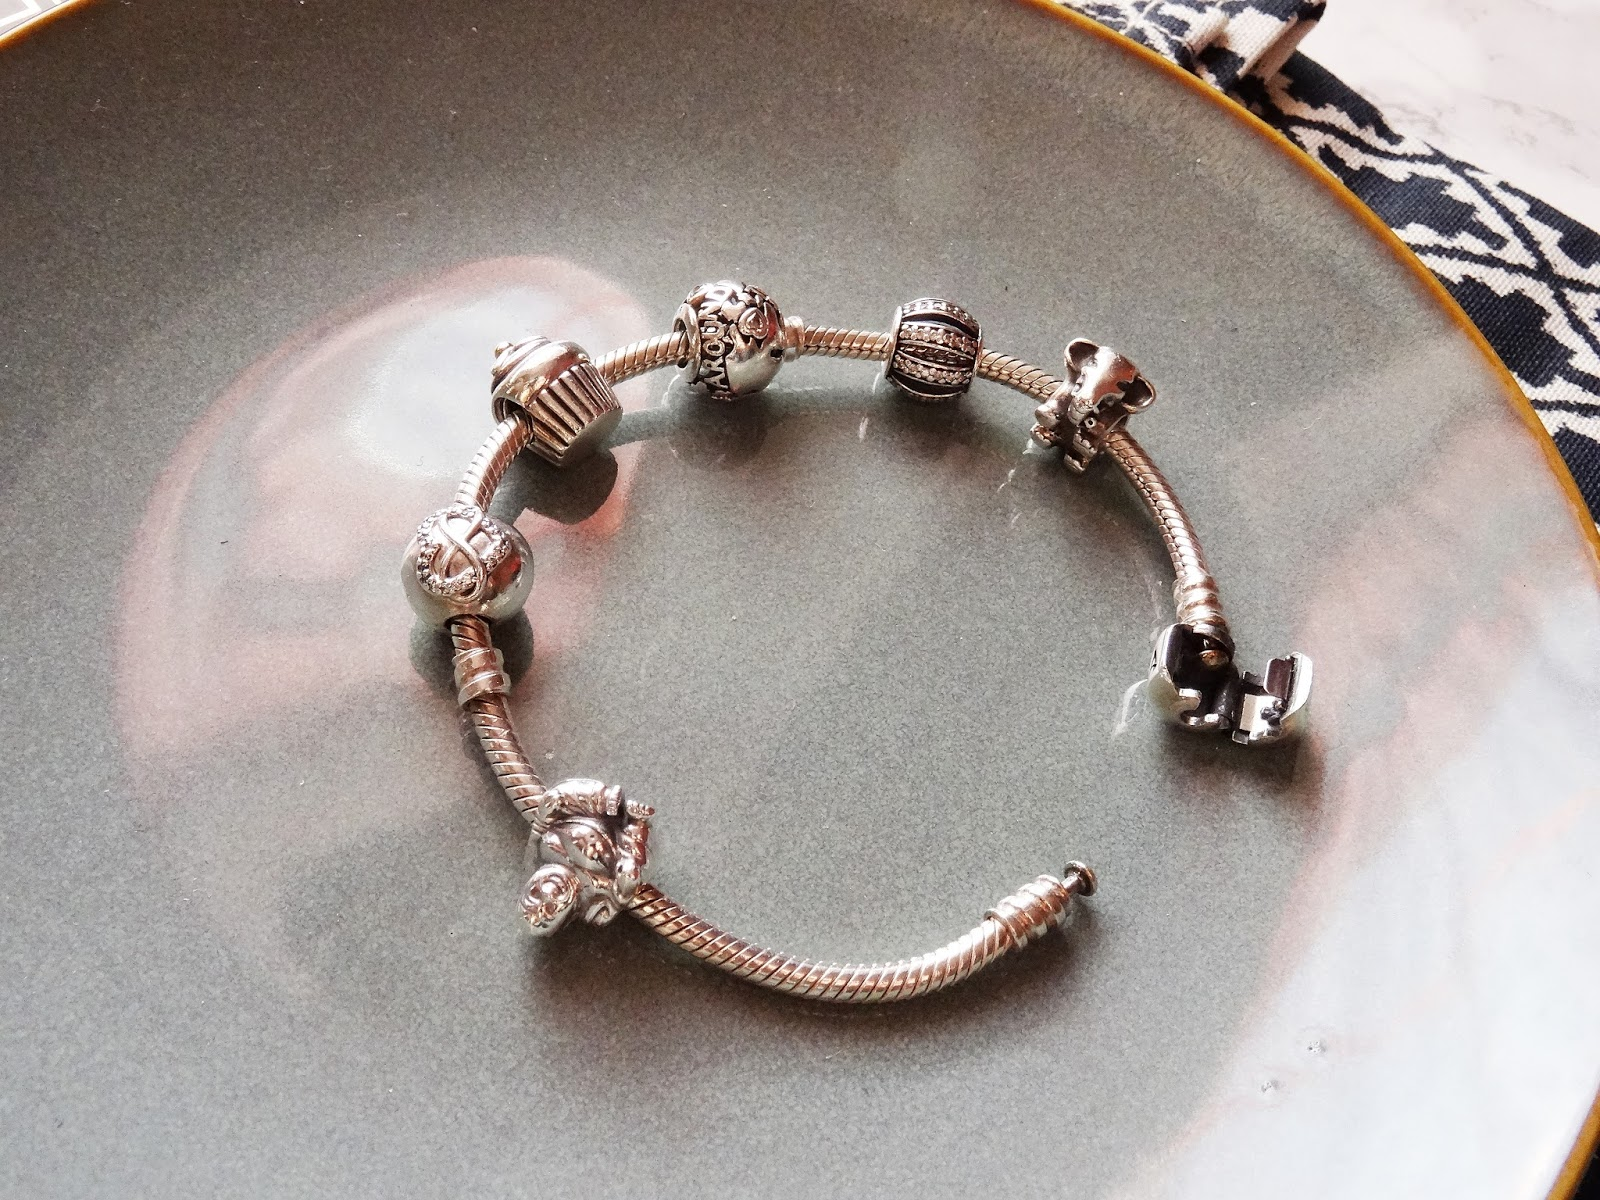 b822bae90 discount wedding charms pancharmbracelets cf3d1 d3d60; buy if youve been a  reader of my blog for a long time you may remember